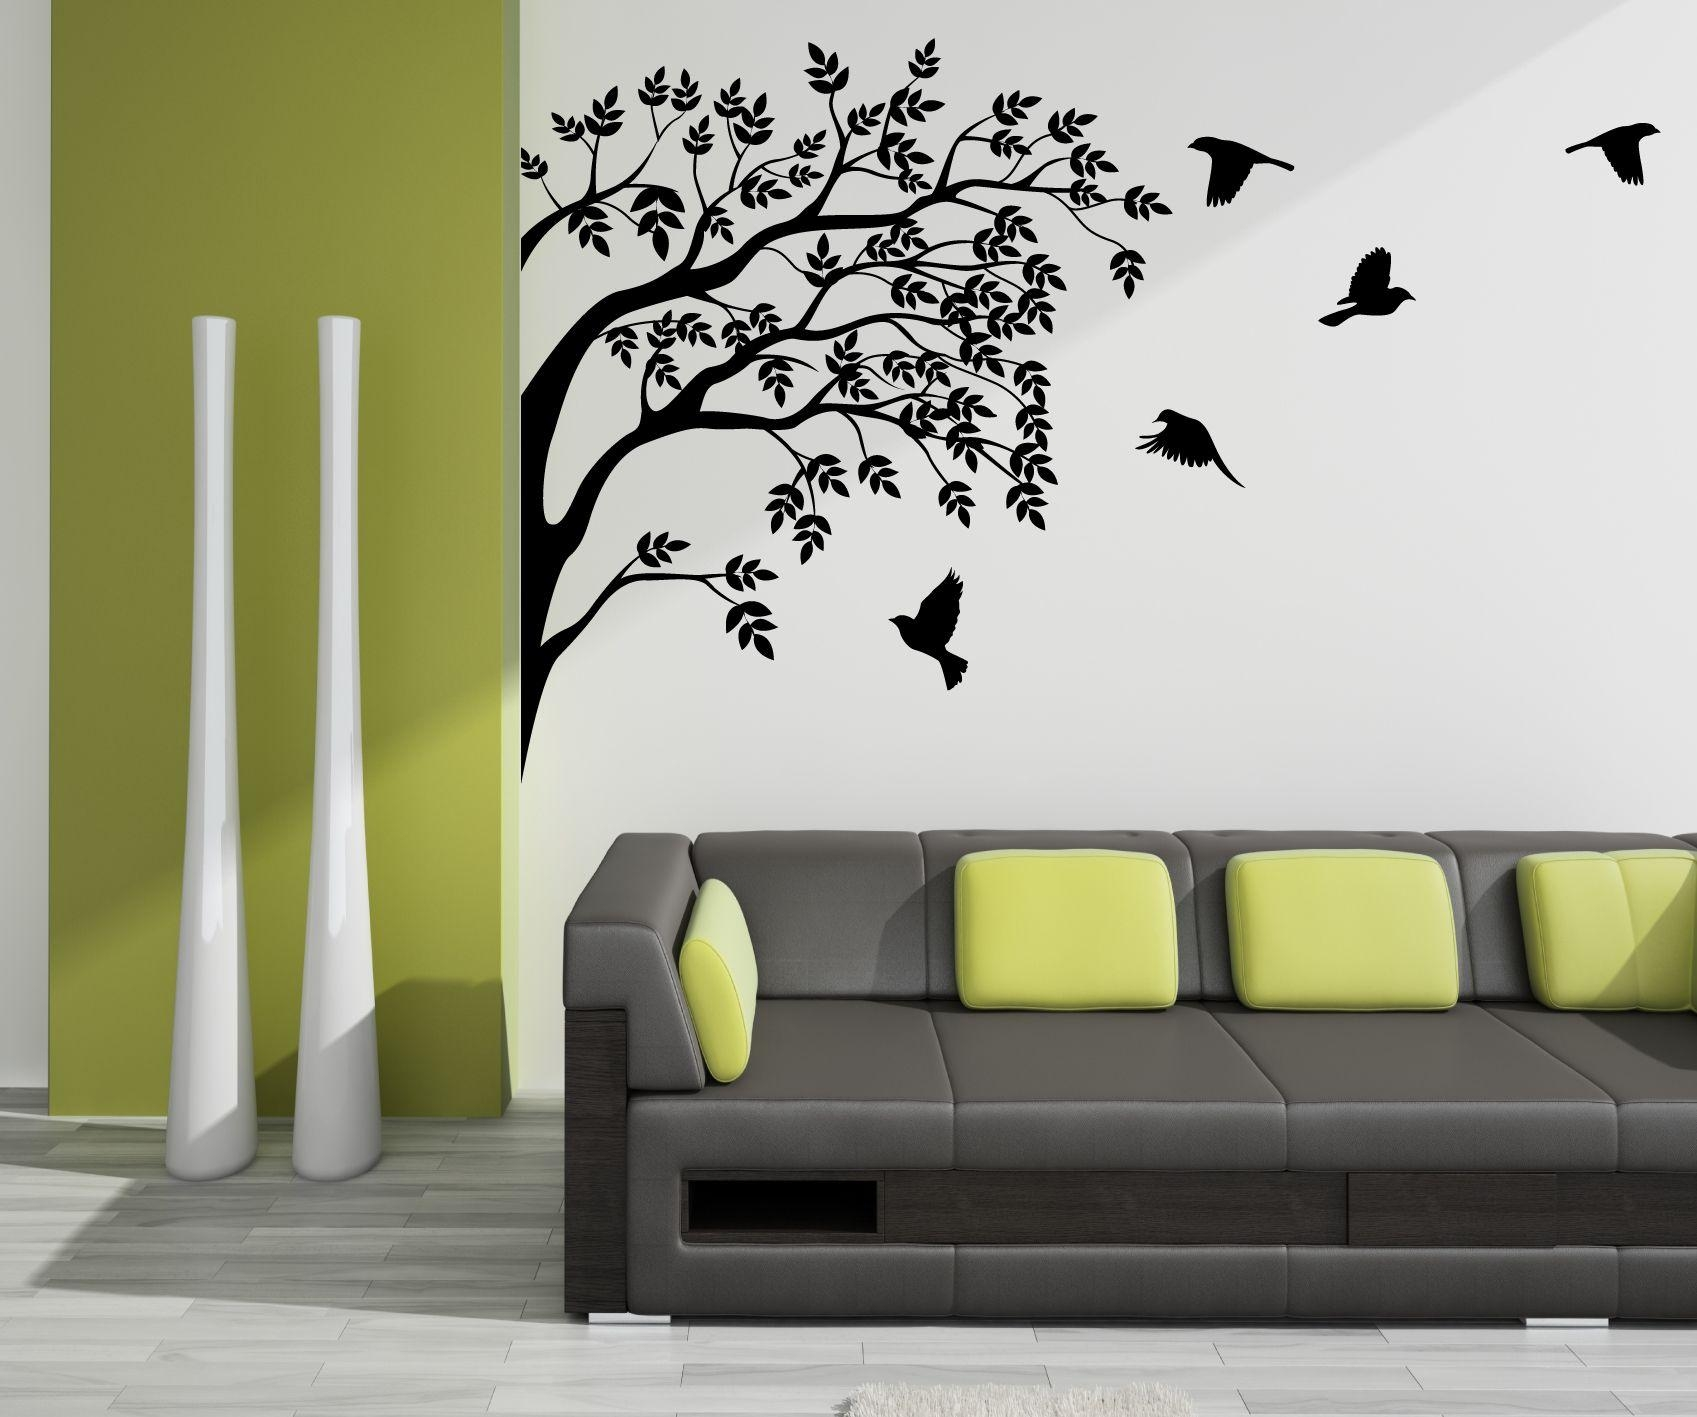 Simple Wall Stickers For Bedrooms Interior Des #10075 With Regard To Wall Art Designs (View 2 of 20)